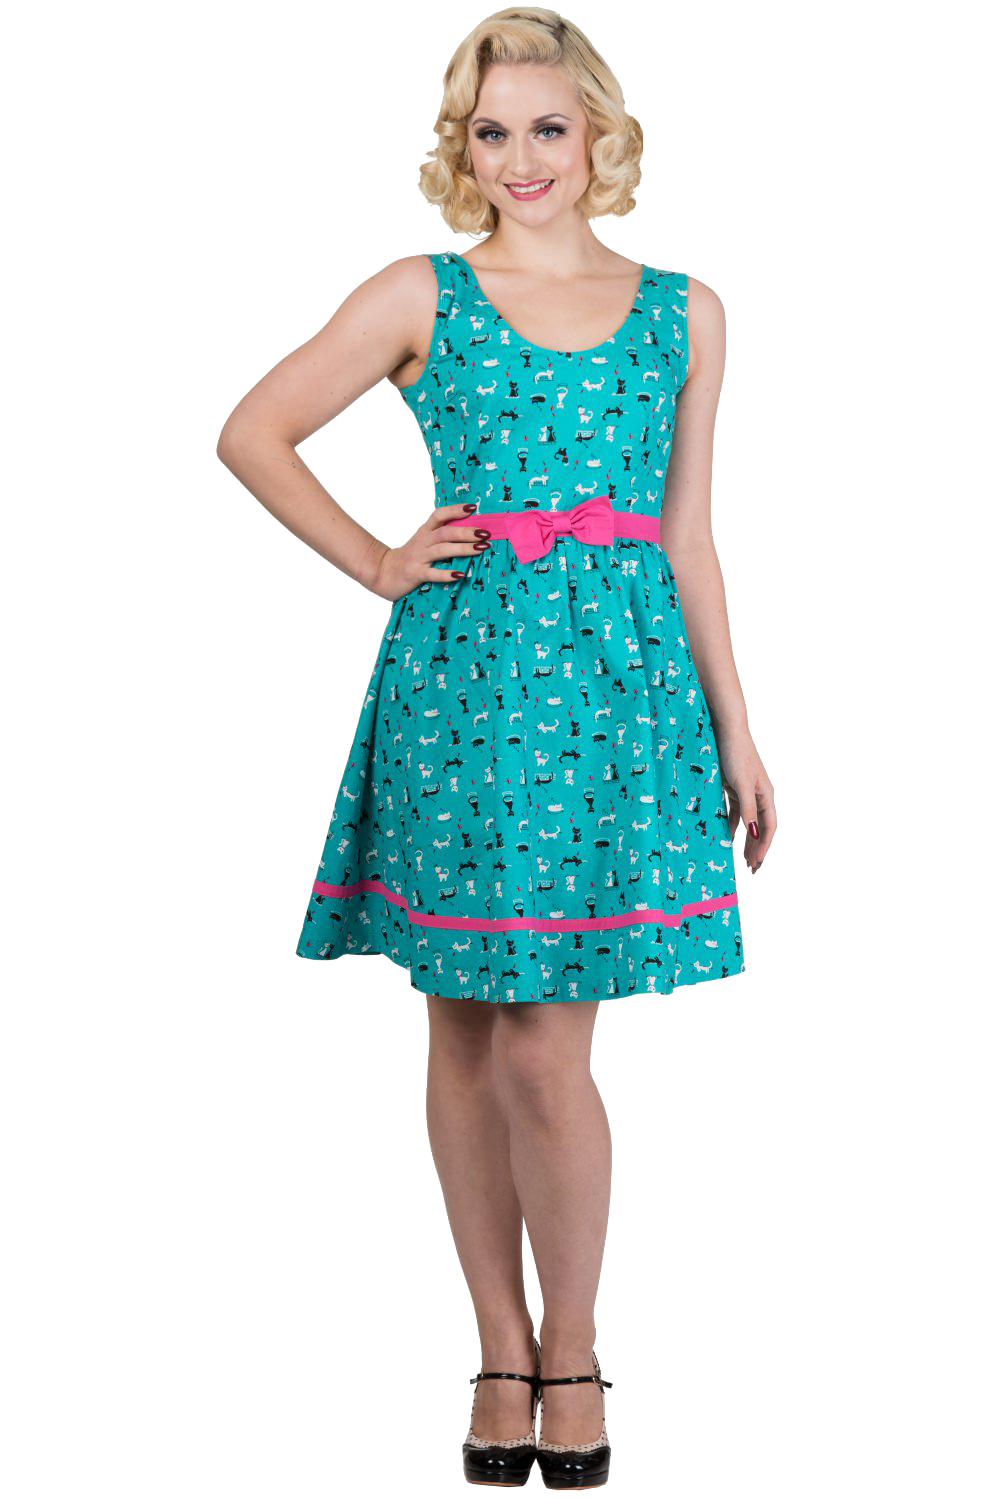 Banned bright lights dress holiday frocks plus sizes available